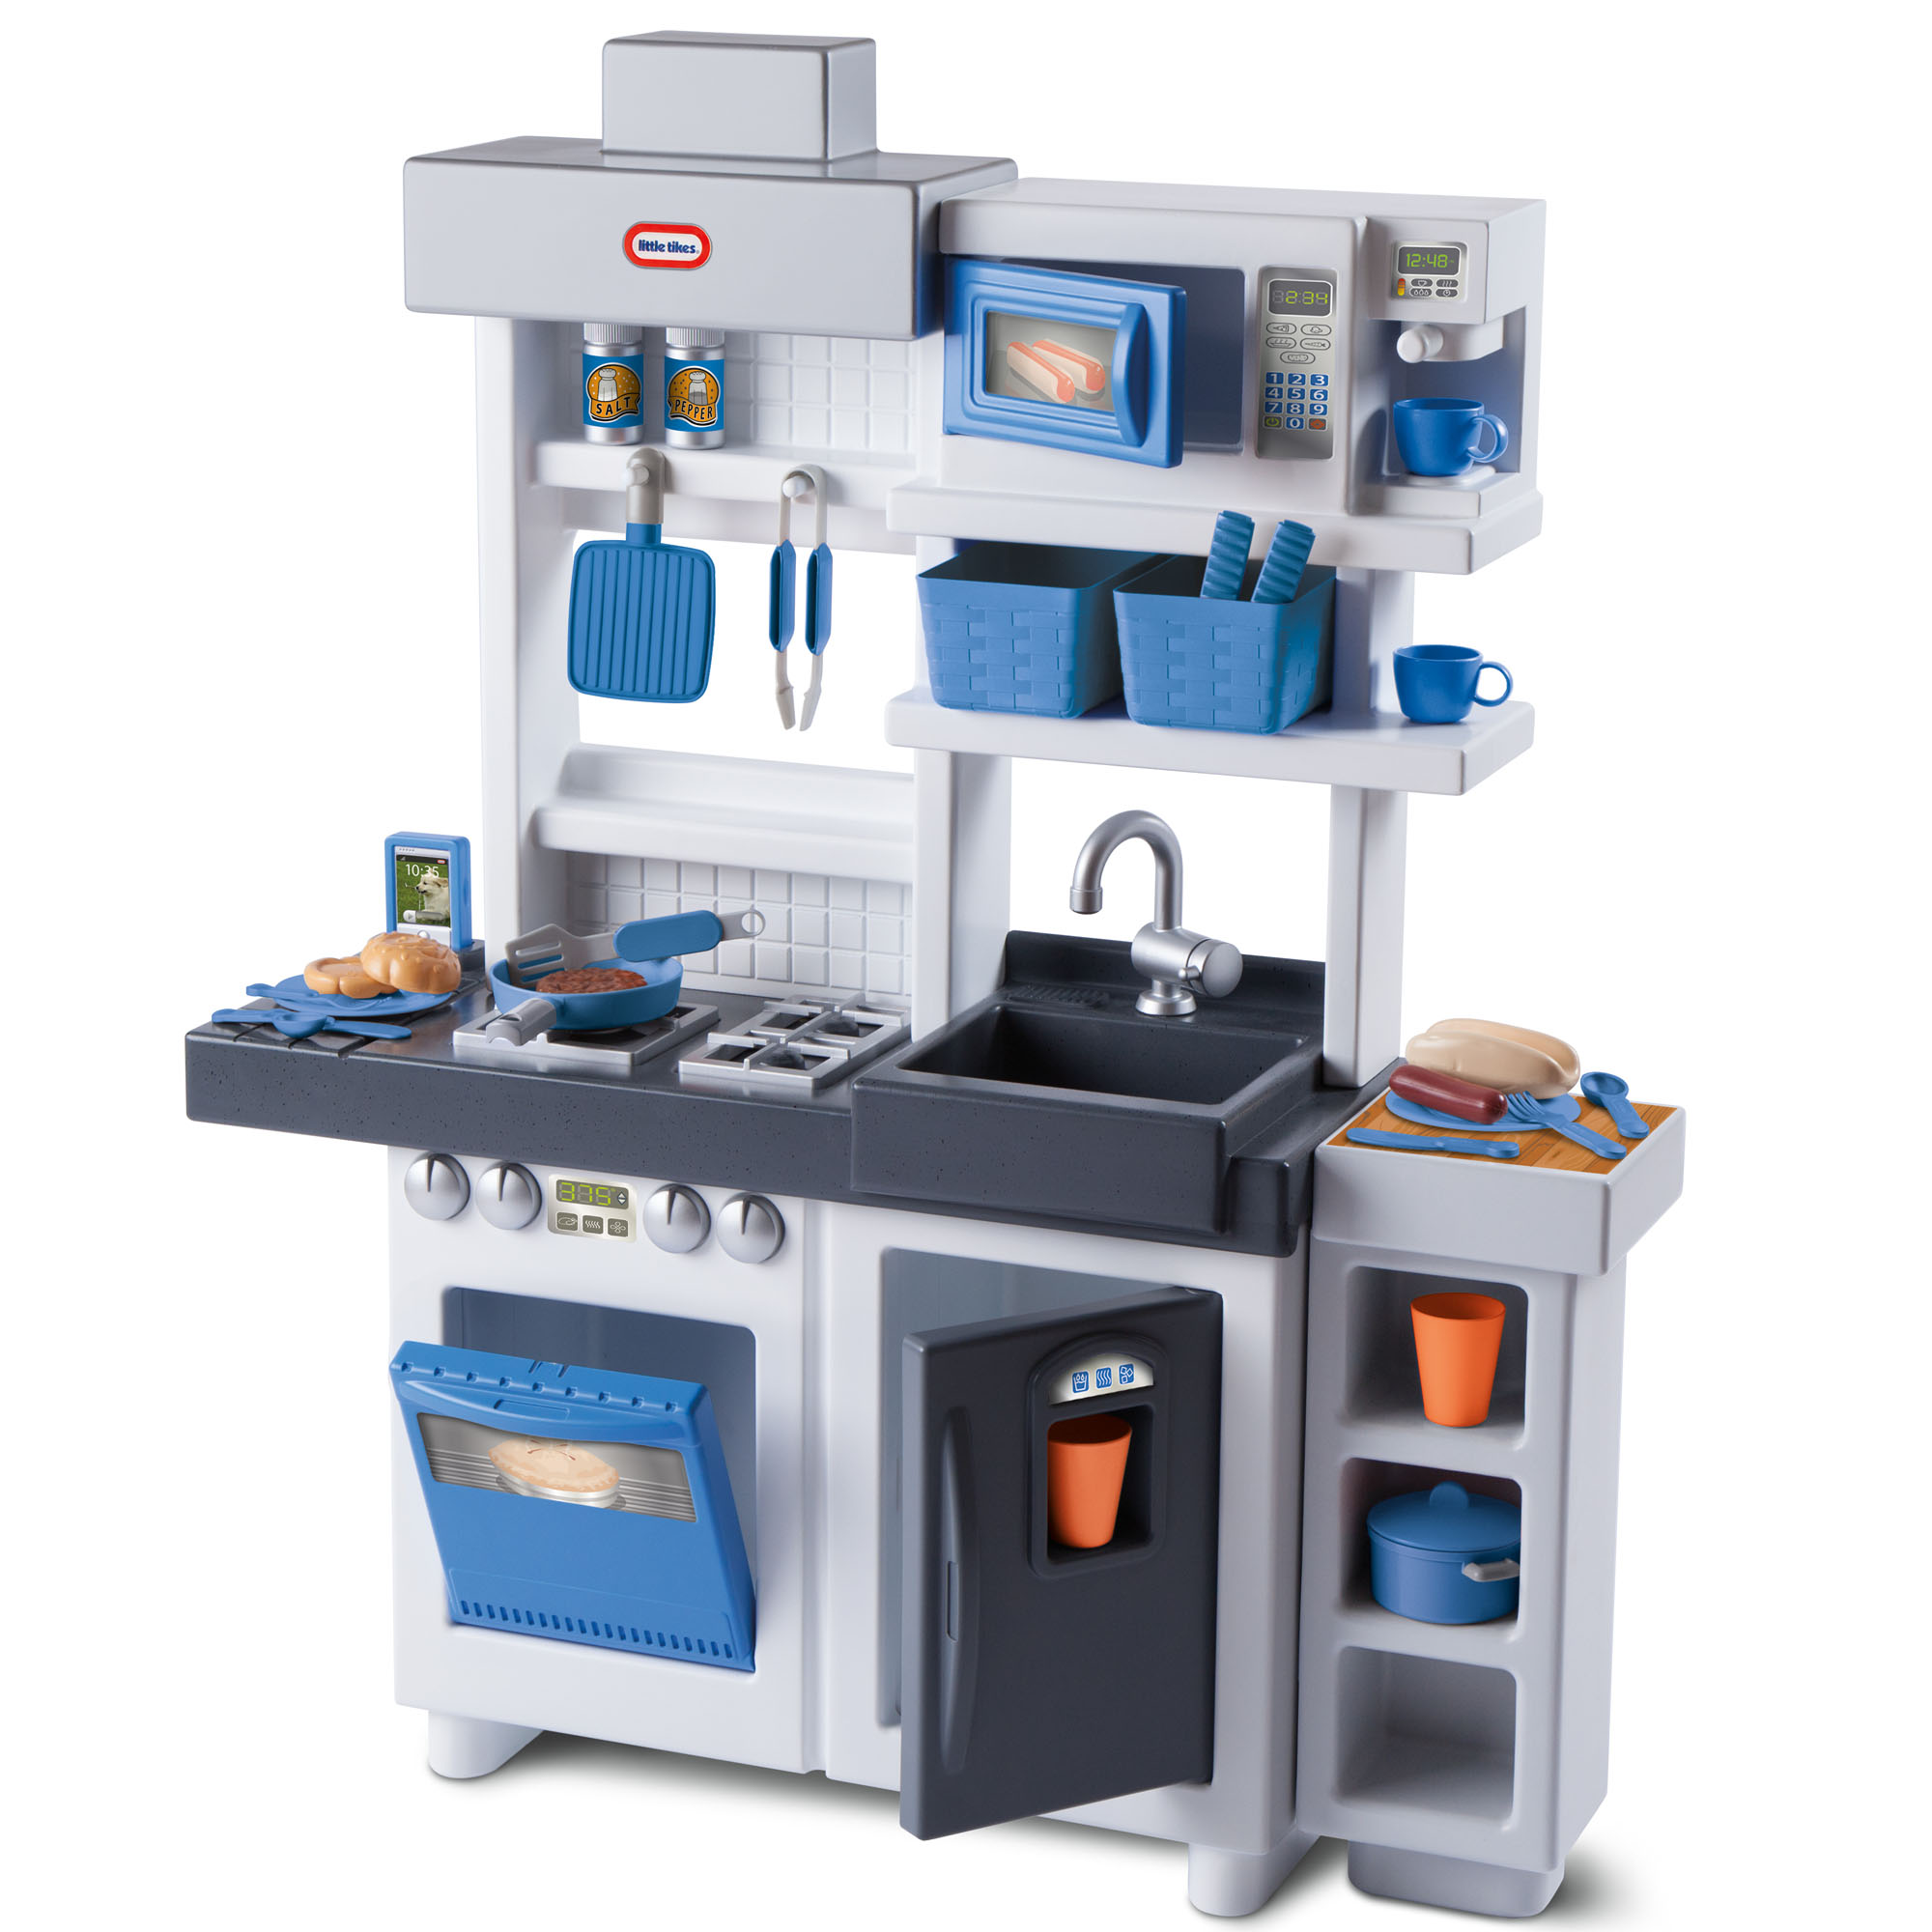 Little Tikes Ultimate Cook Play Kitchen With 30 Piece Accessory Play Set Walmart Com Walmart Com